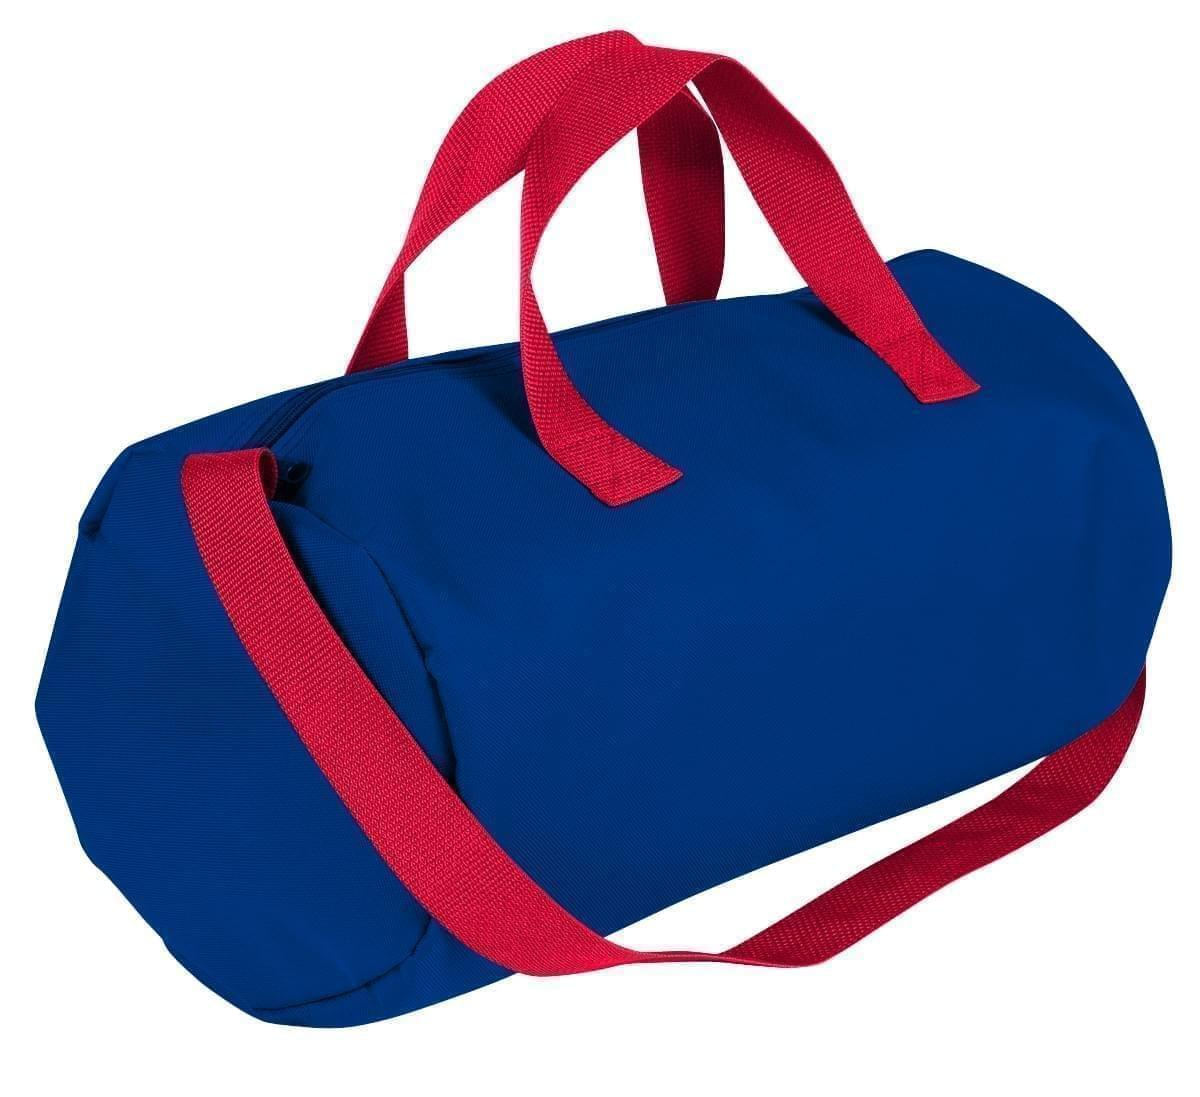 USA Made Nylon Poly Gym Roll Bags, Royal Blue-Red, ROCX31AA02